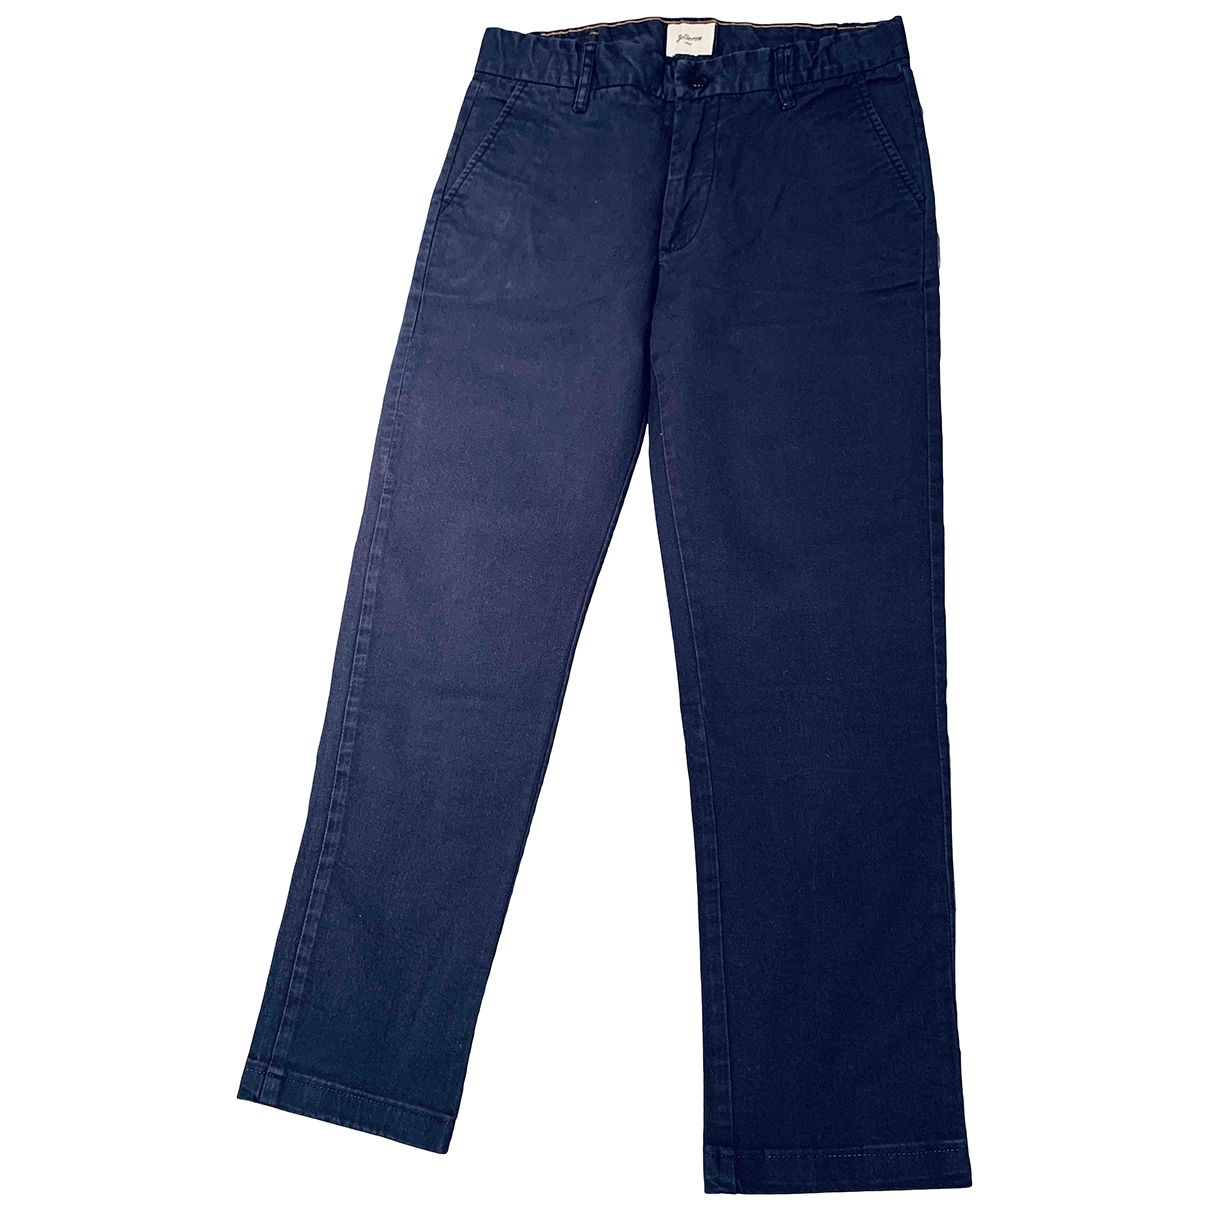 Bellerose \N Blue Cotton Trousers for Kids 14 years - S FR